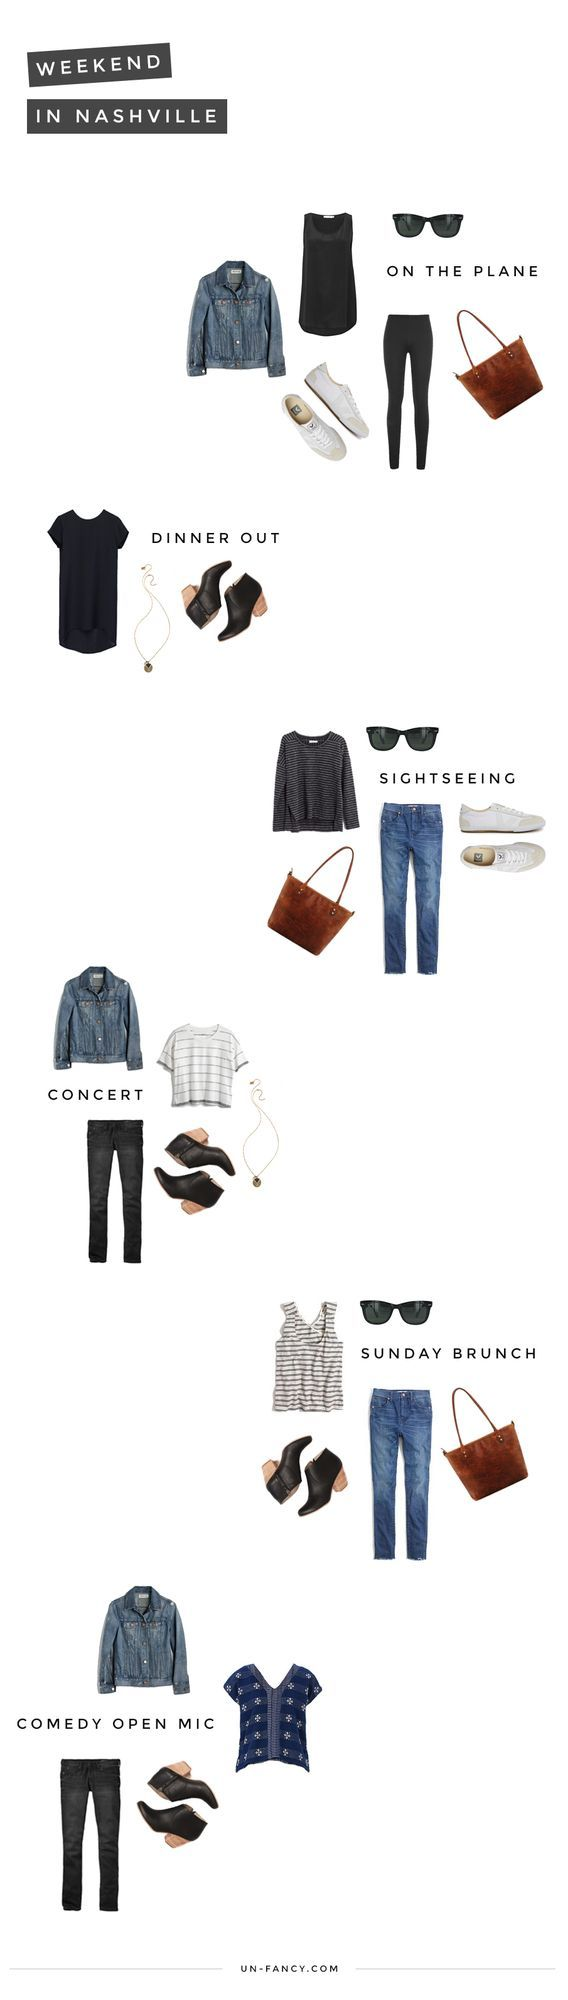 nashville: a weekend of outfits + a packing list | Un-Fancy | Bloglovin'